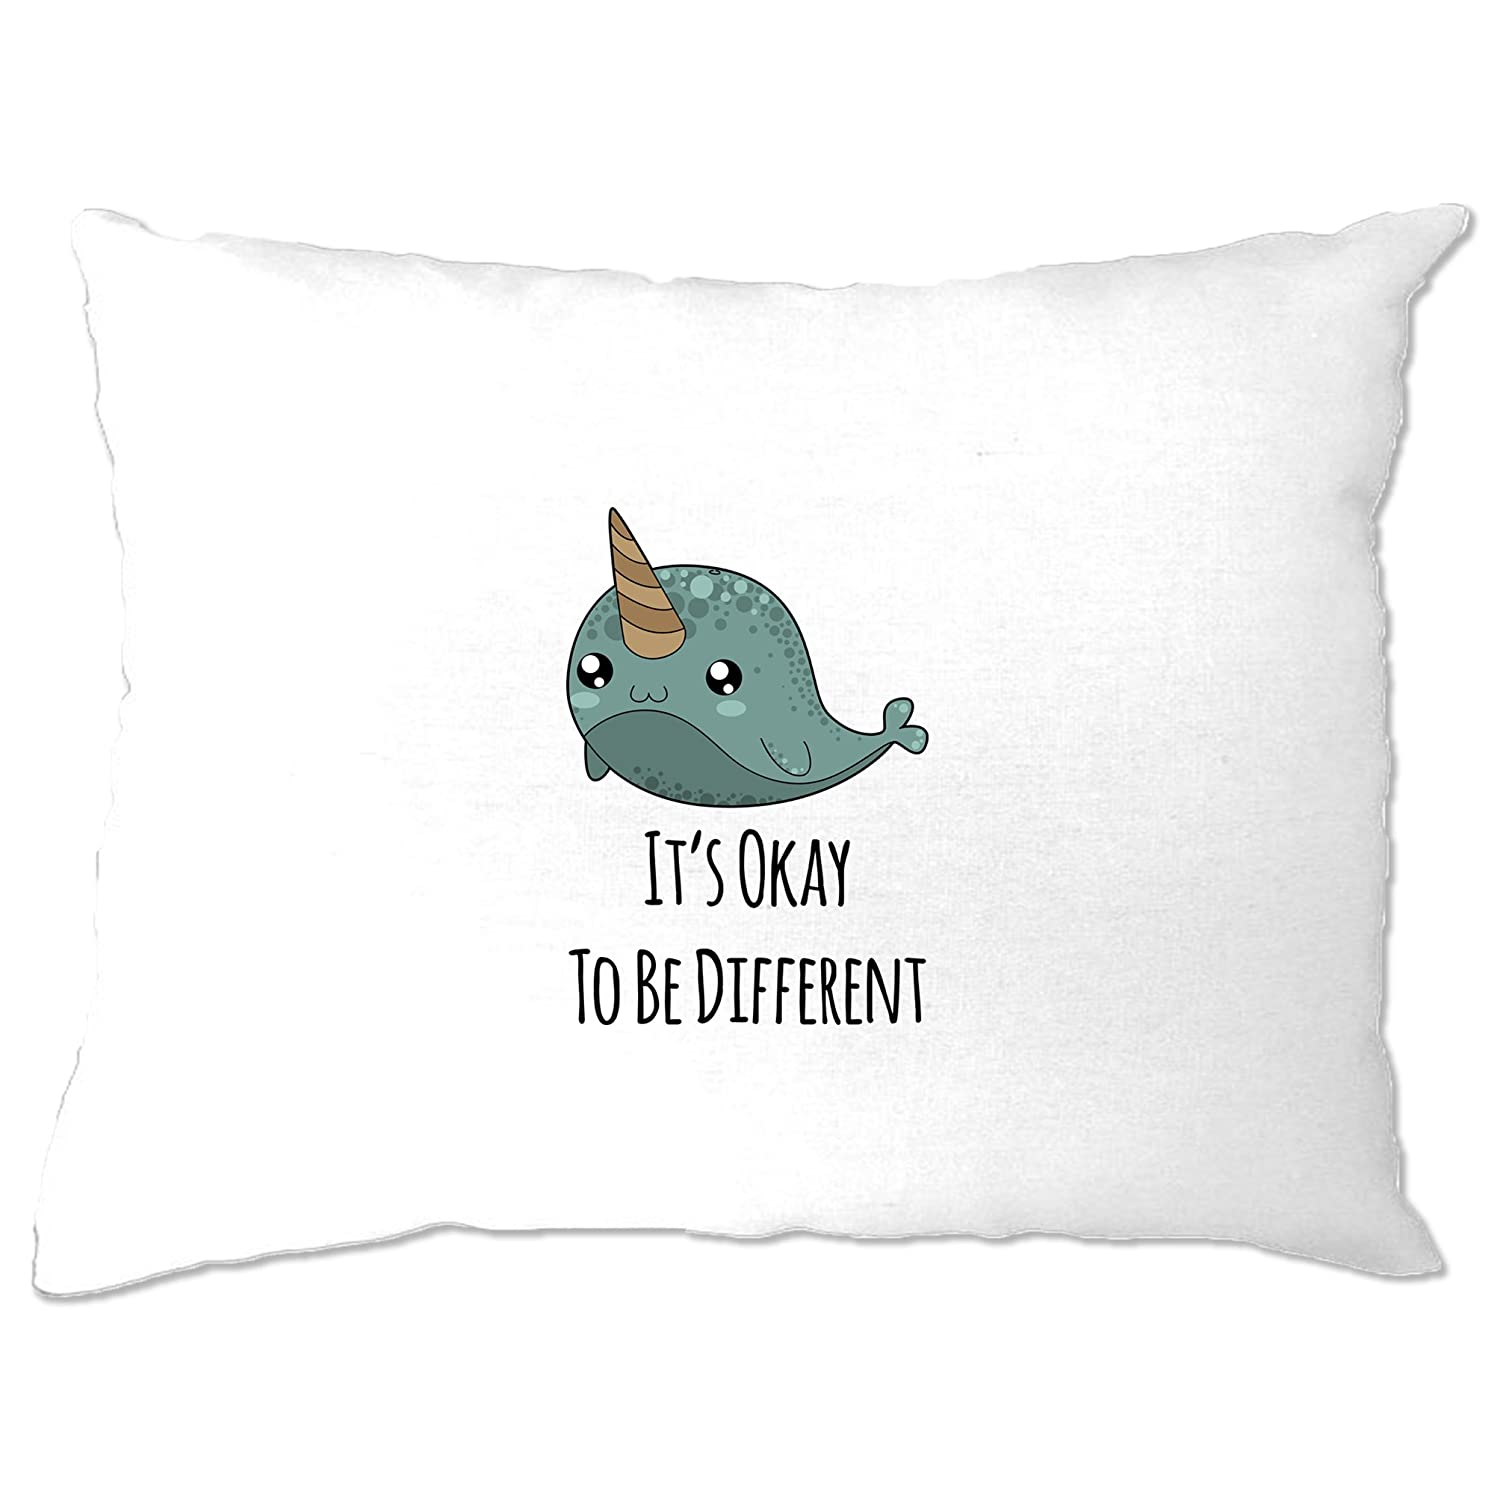 Cute Narwhal Pillow Case It's Okay To Be Different Slogan White One Size A-PC-01568-WHT